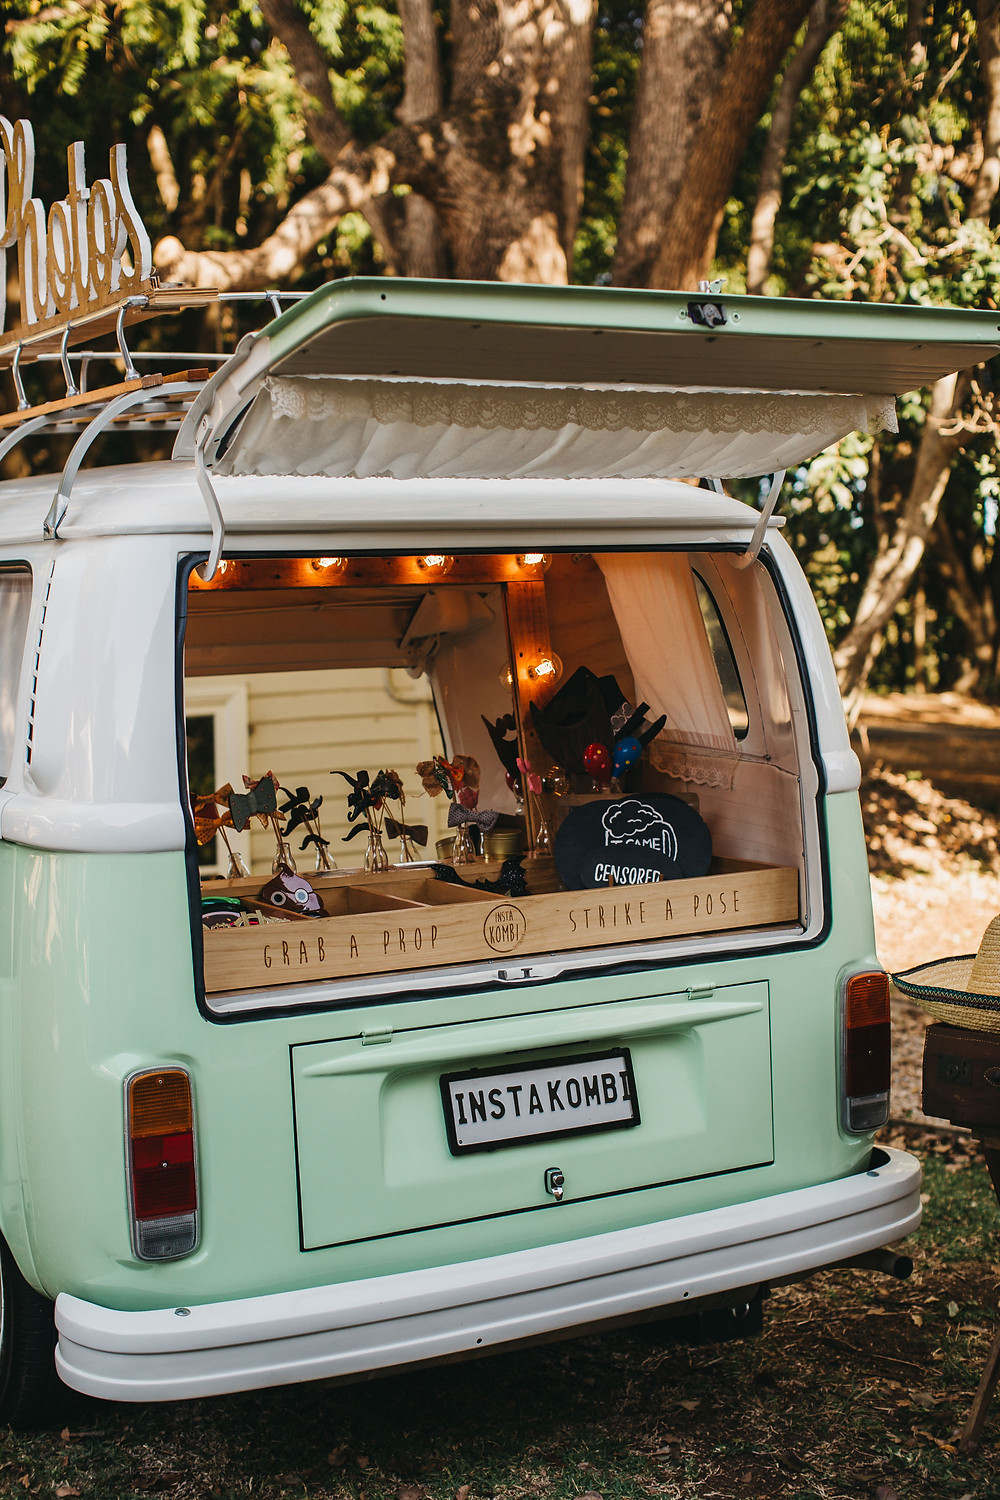 Ewingsdale Hall, Byron Bay with Insta Kombi Photo Booth